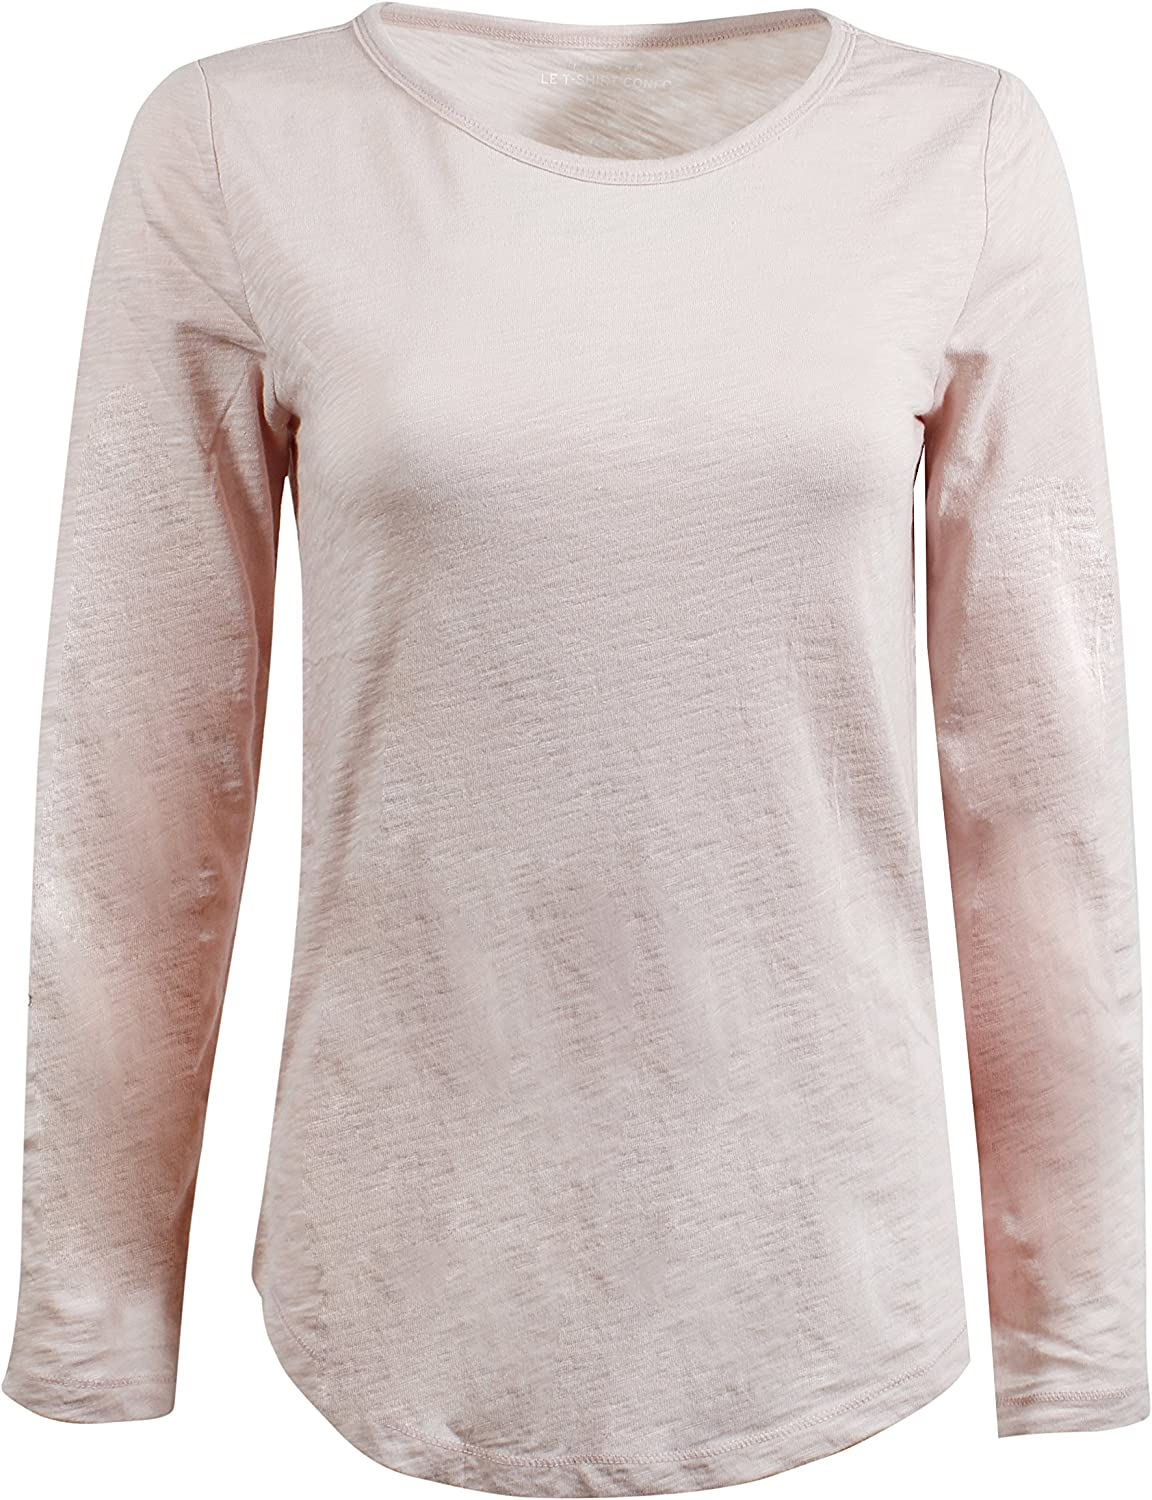 Gap Women's Long Sleeve Crewneck TShirt